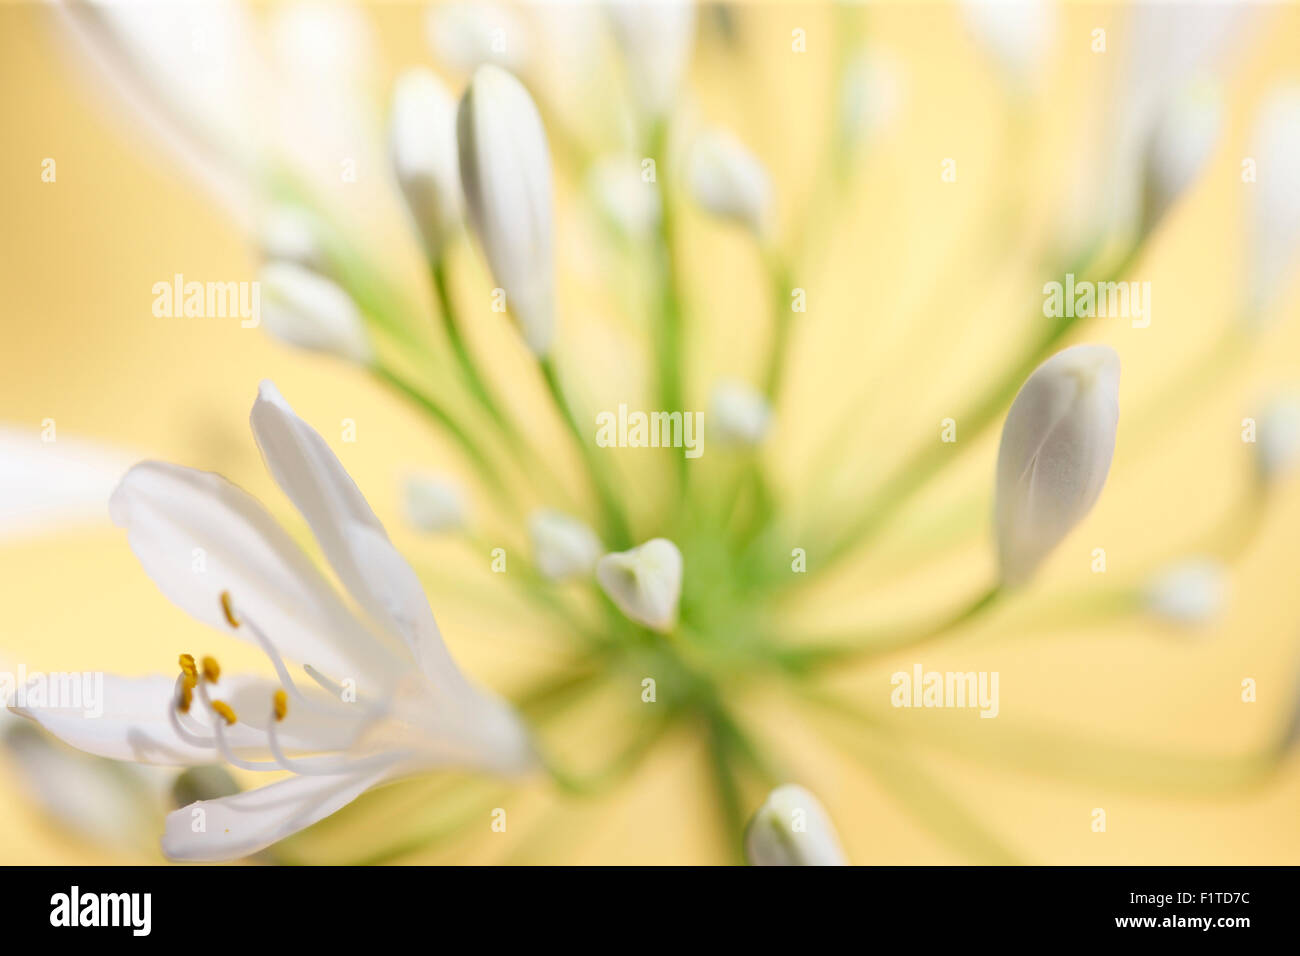 romantic agapanthus, the flower of love Jane Ann Butler Photography JABP1089 Stock Photo